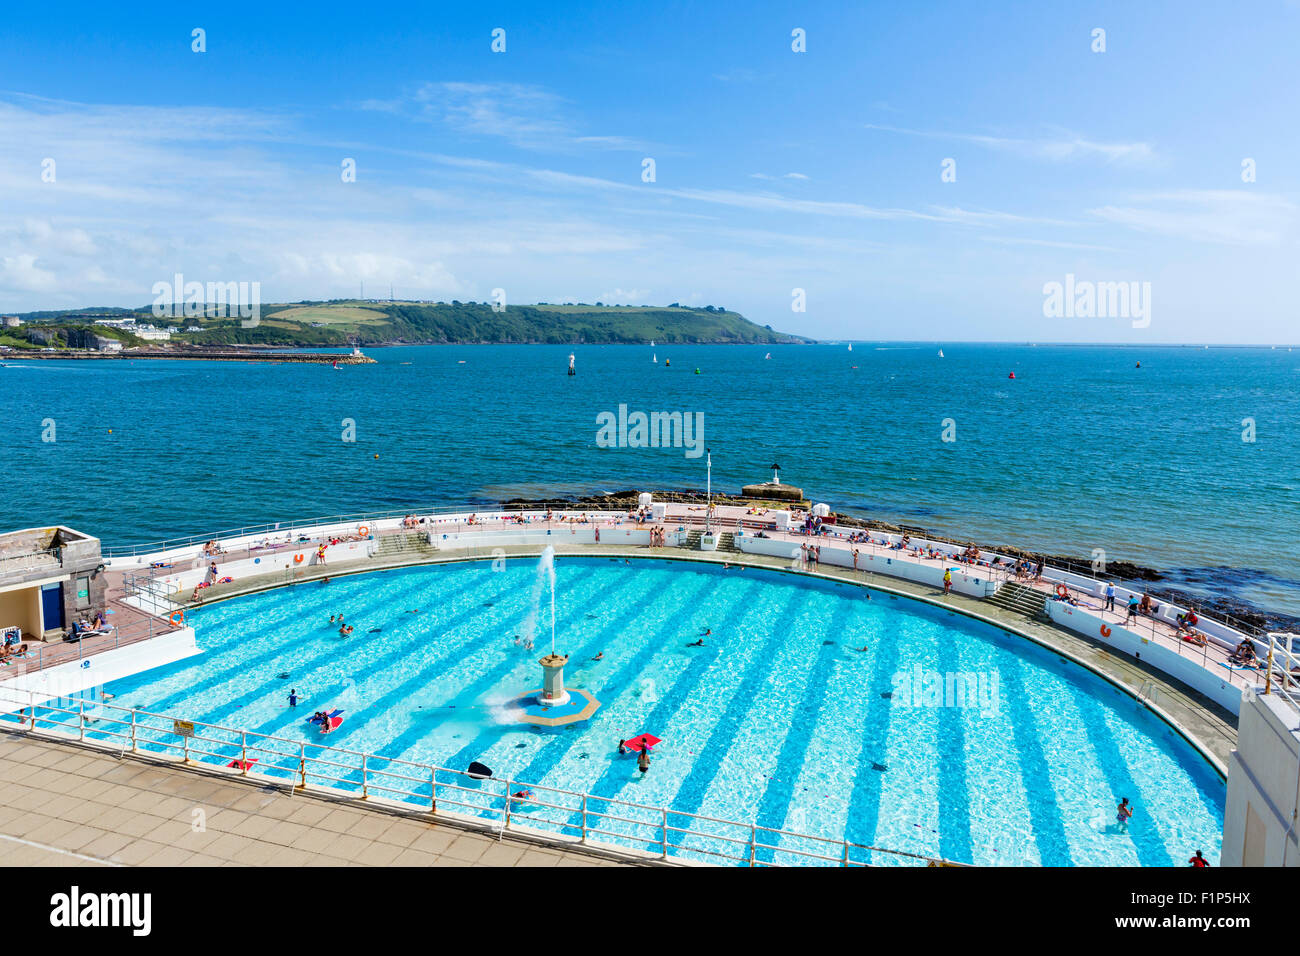 The 1930s Tinside Lido by the Hoe overlooking Plymouth Sound, Plymouth, Devon, England, UK Stock Photo